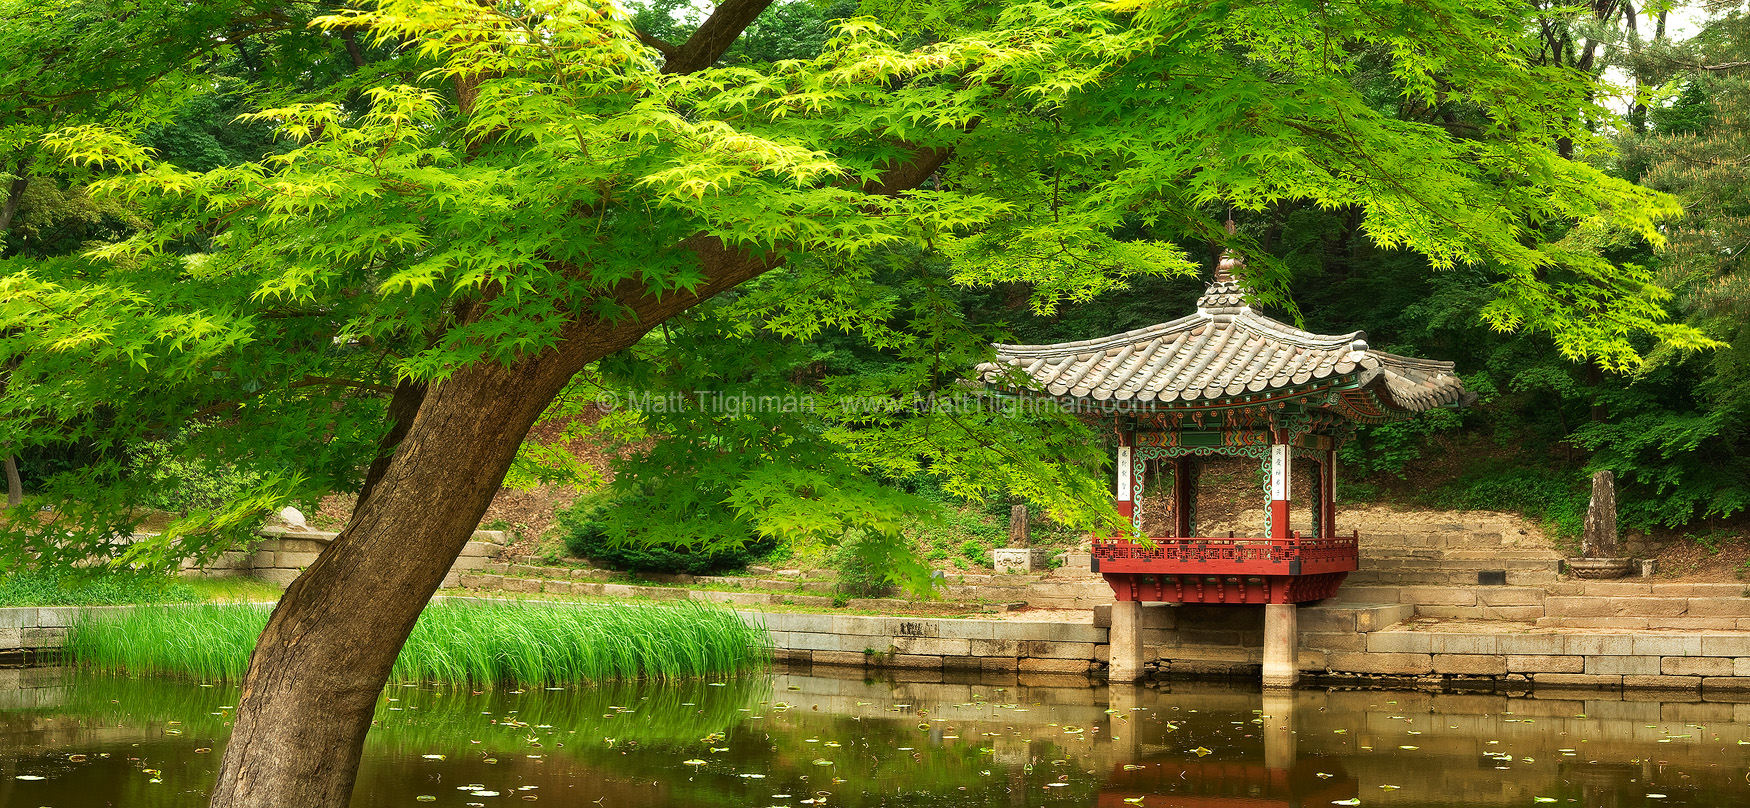 Fine art stock photograph from the Changdeokgung Secret Garden, in Seoul South Korea. Beautiful in any season, it is seen here in the fresh green garb of spring.